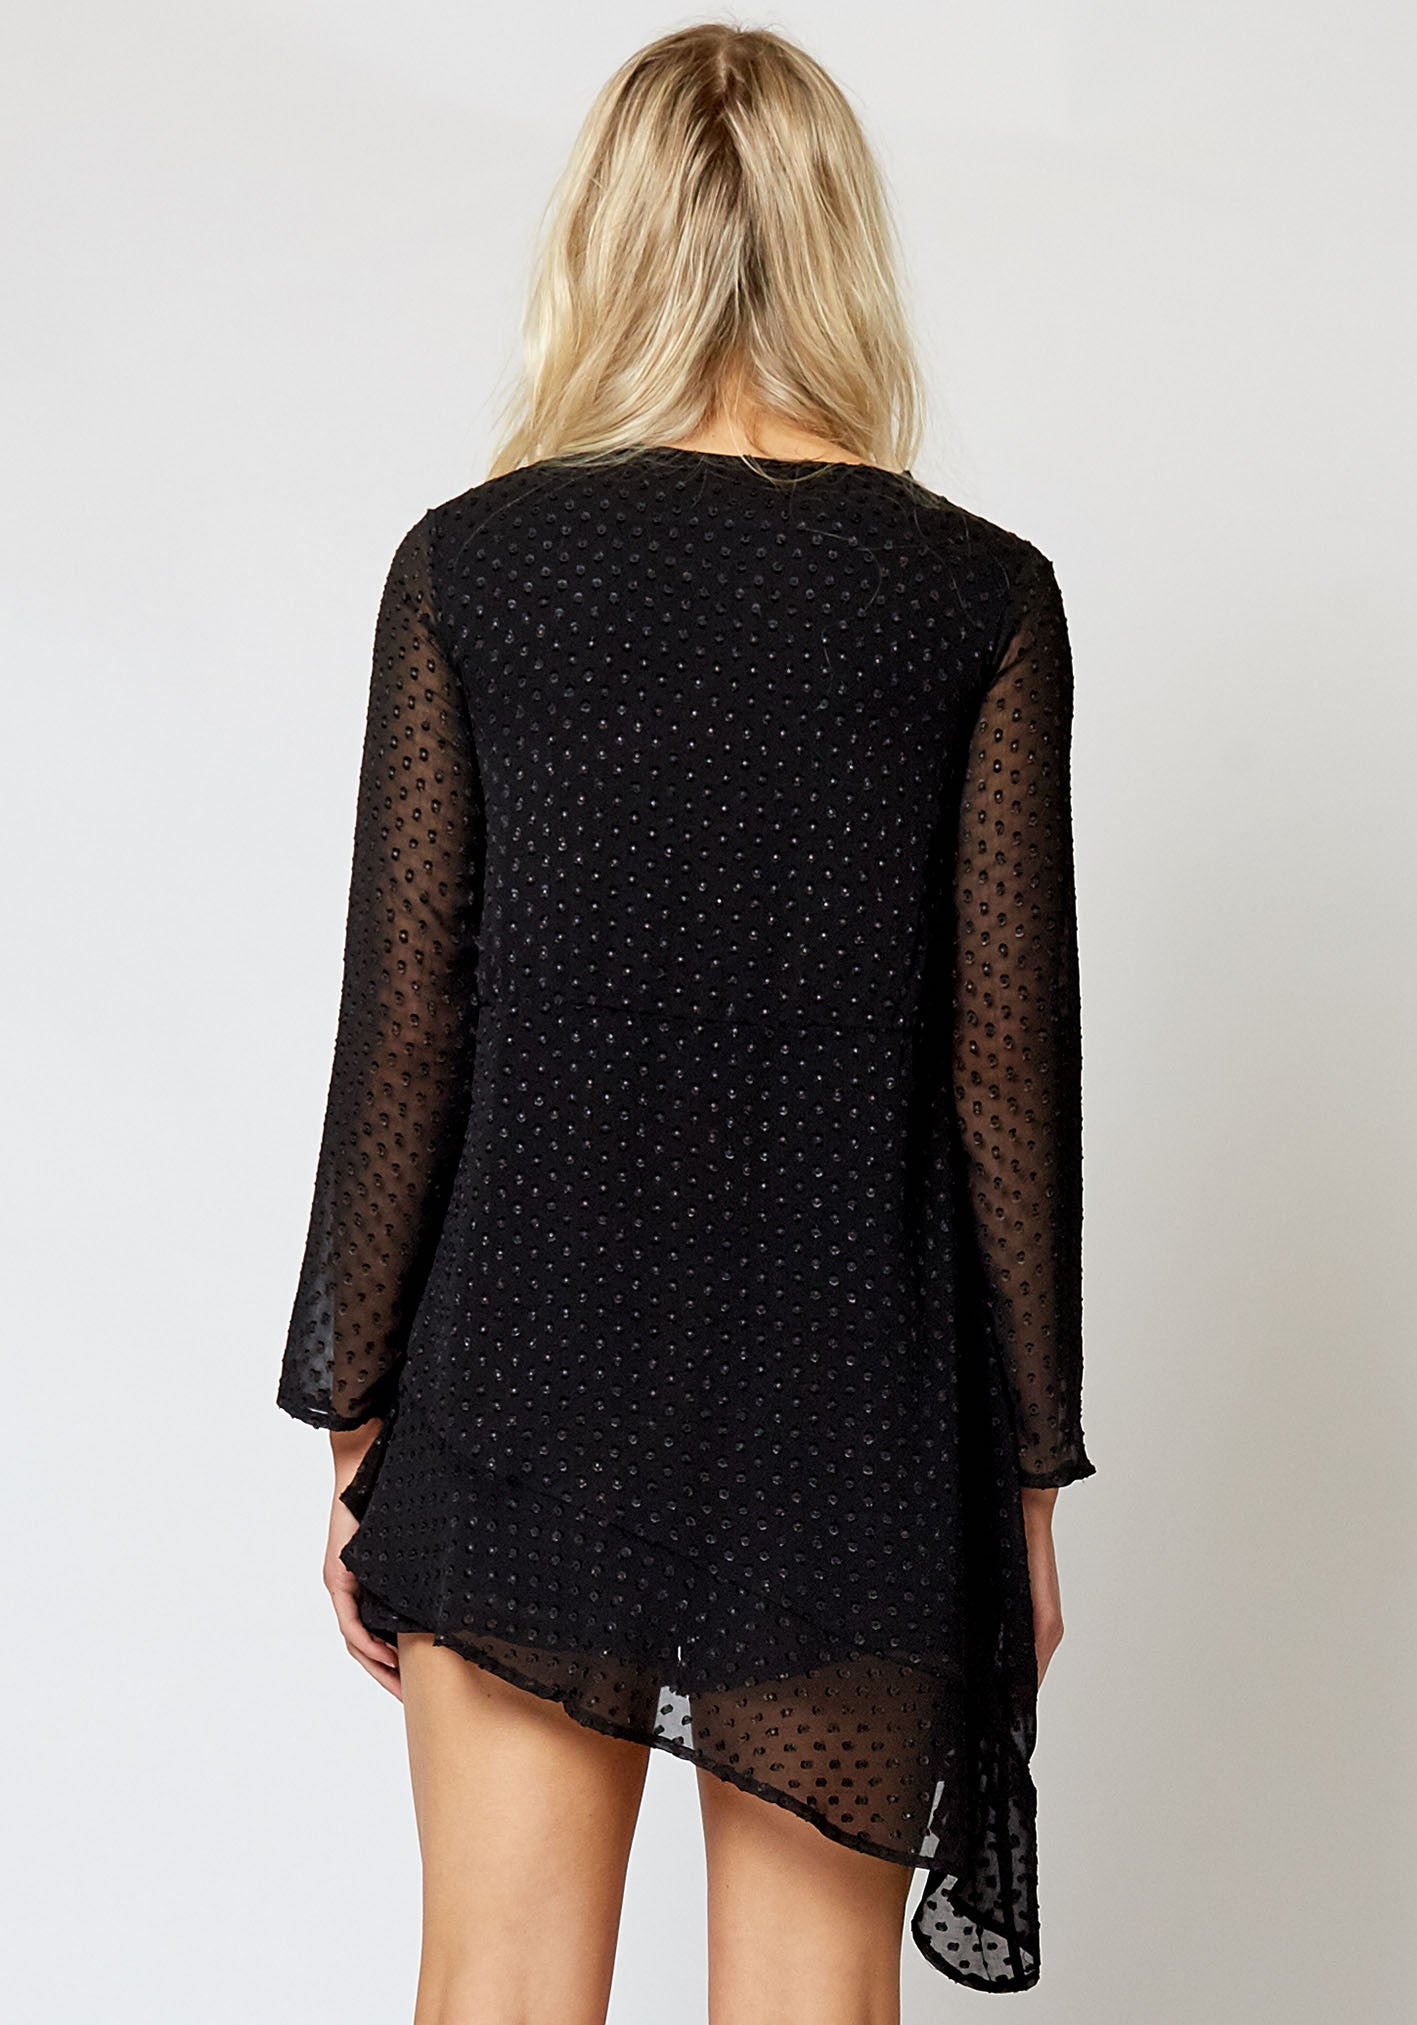 Hornet Back Blouse